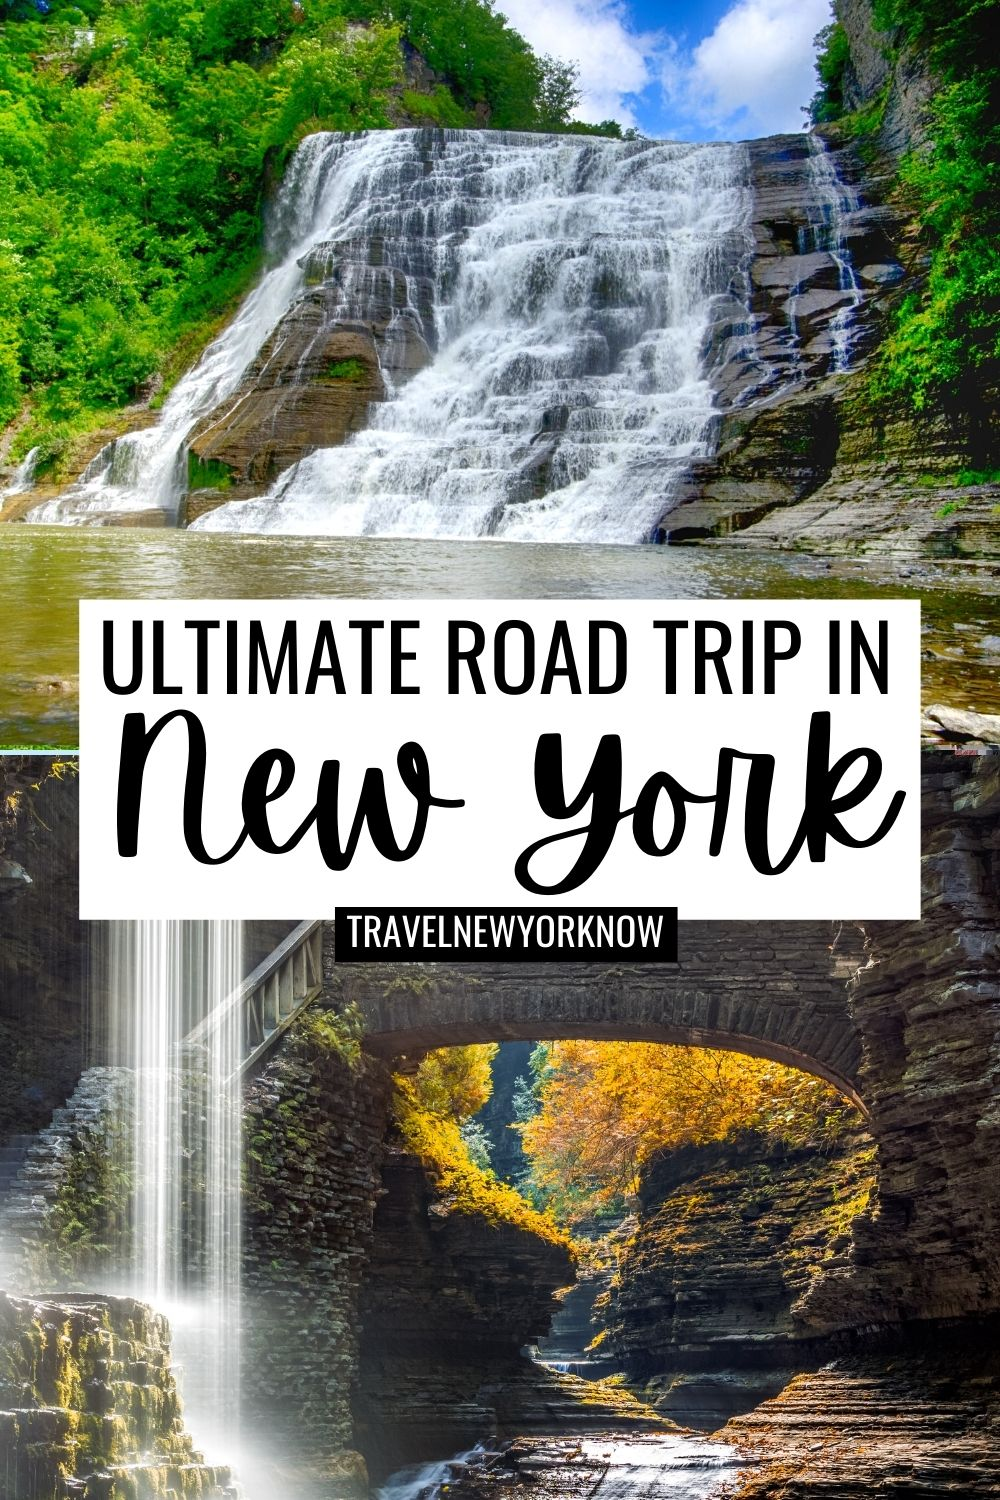 Best New York Road Trip Itinerary, New York Itinerary, New York Travel Tips, New York Travel Guide, New York Travel Photography, Best Road Trips from NYC, where to go in New York, New York bucket list, NY road trip itinerary, Best New York Road Trips.